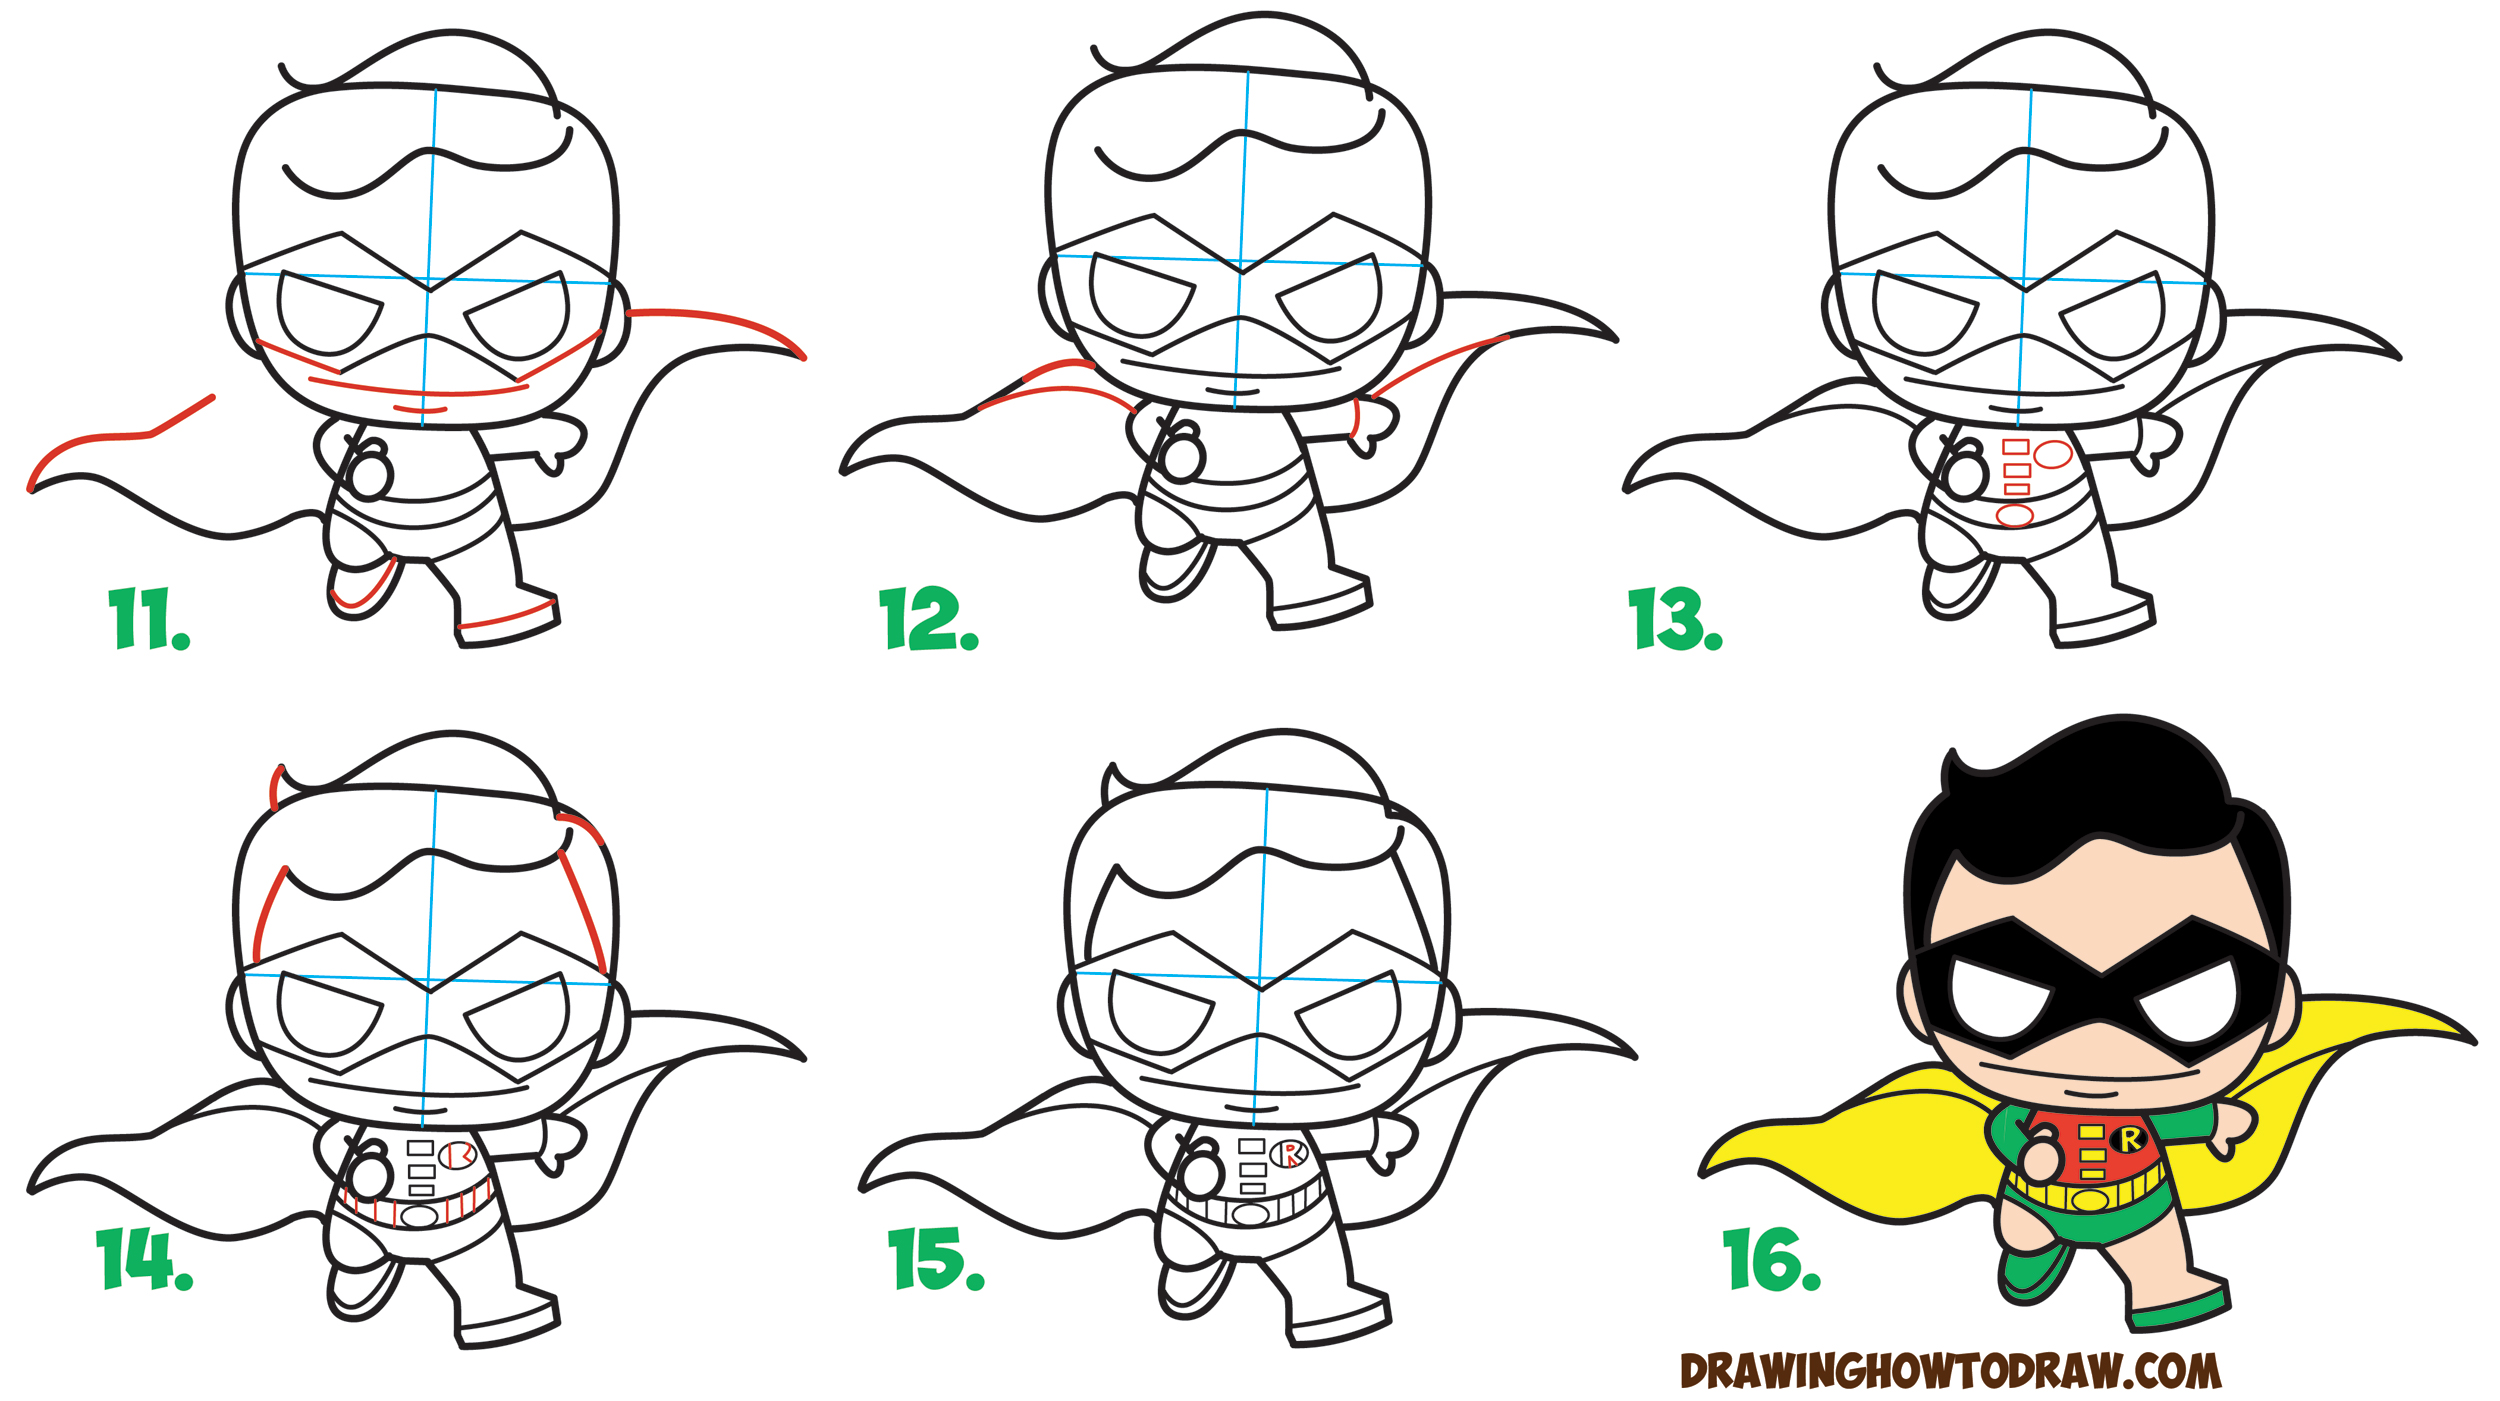 Learn How to Draw Cute / Kawaii / Chibi Robin from DC Comics' Batman & Robin in Simple Step by Step Drawing Tutorial for Kids